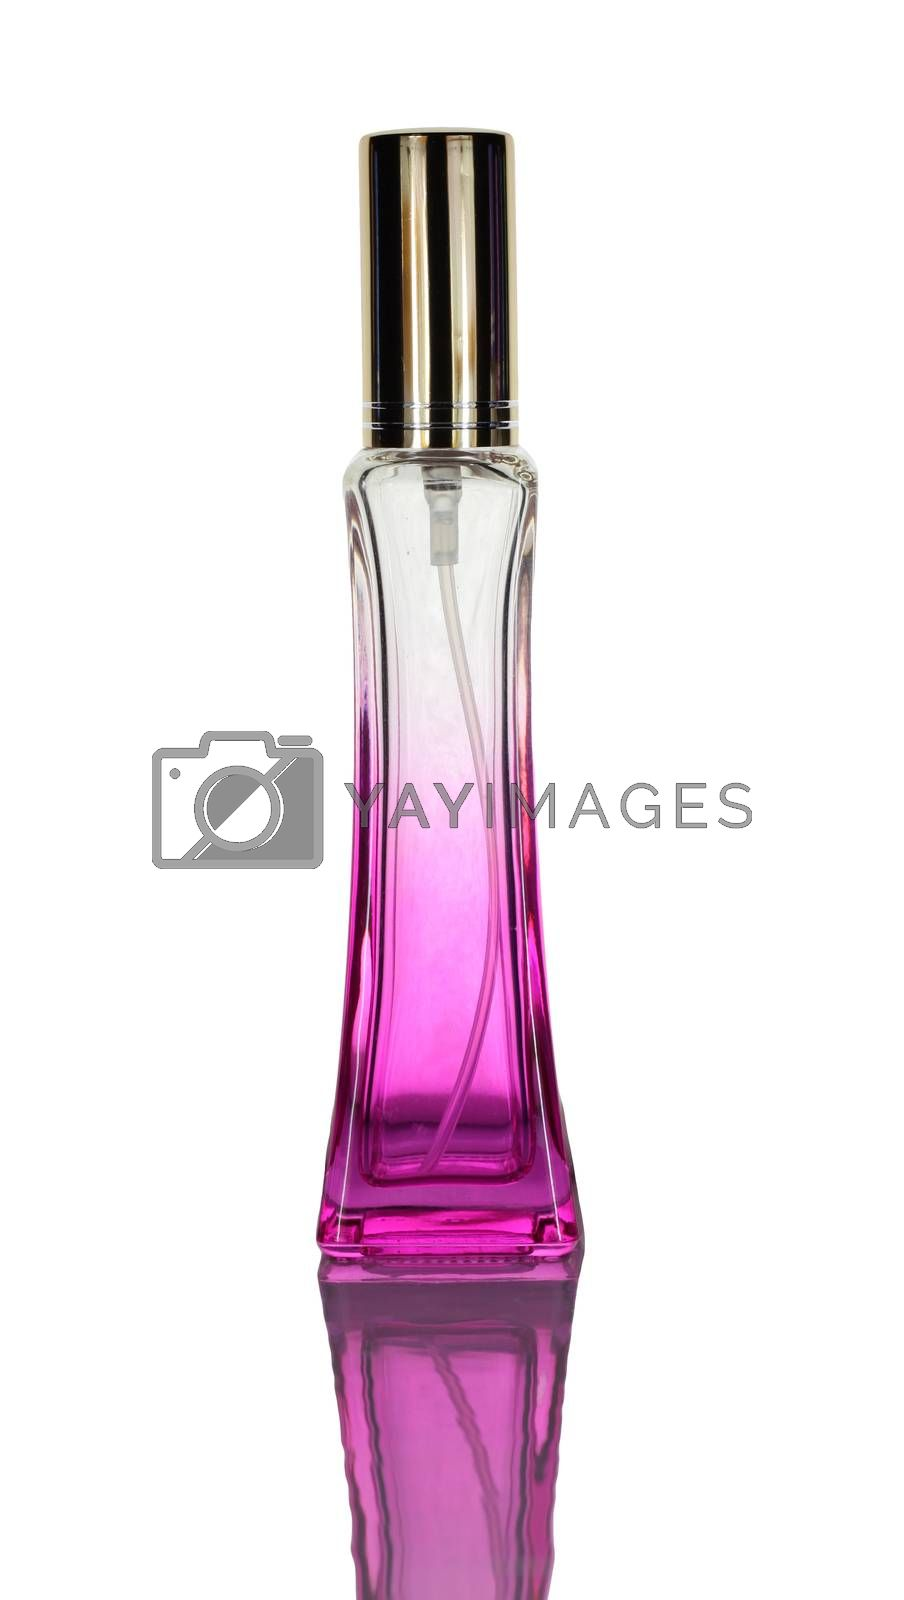 New perfume bottles that are not in use isolated on white background.